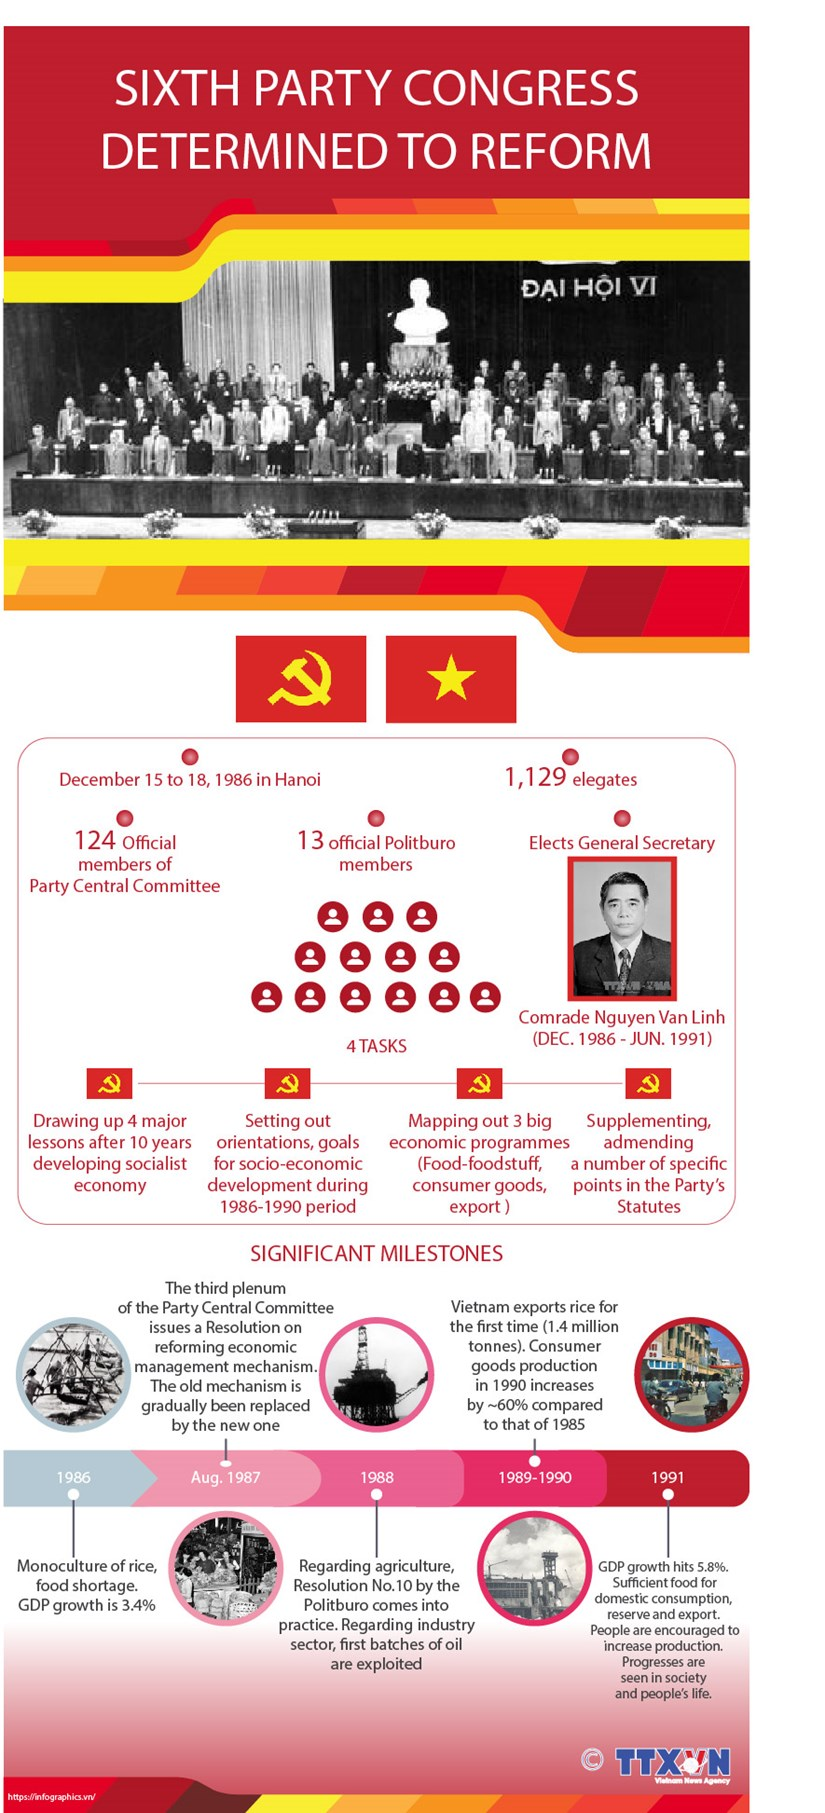 Sixth Party Congress determined to reform hinh anh 1